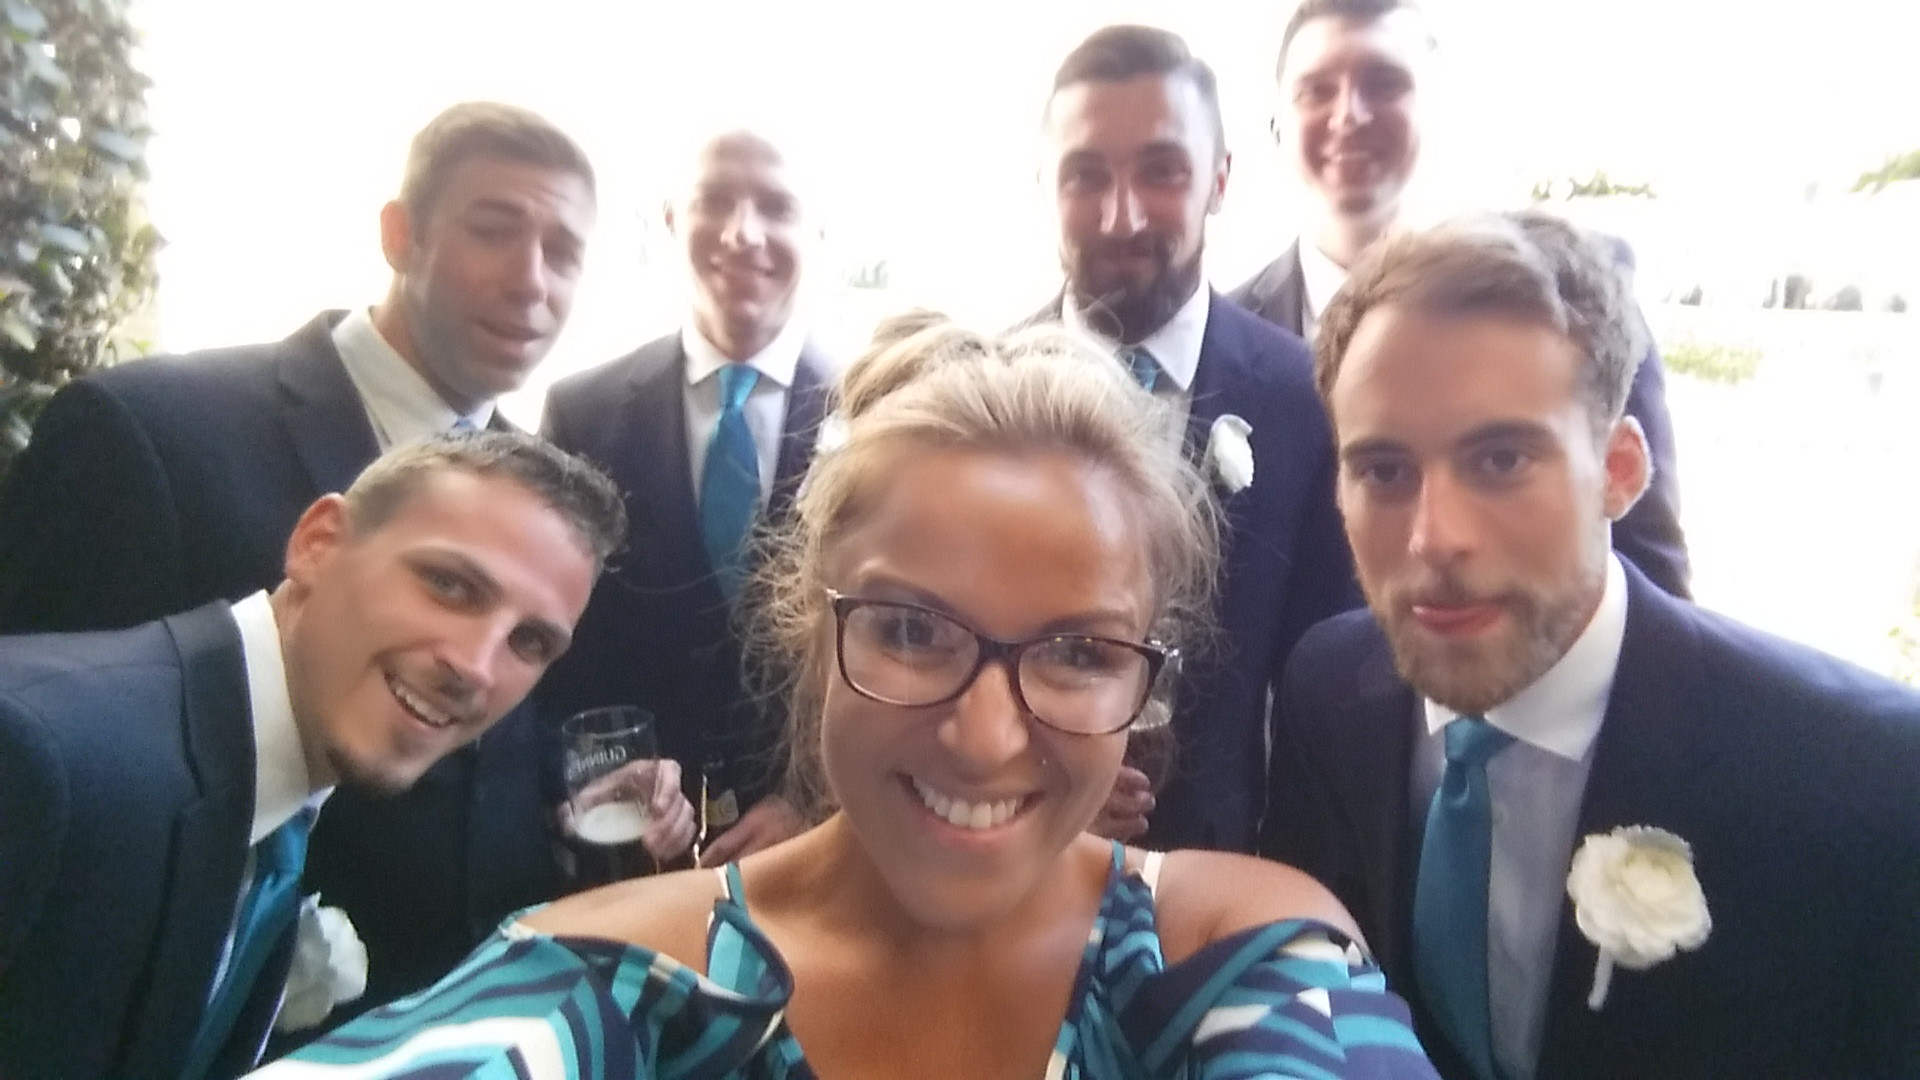 Coordinator _ Groomsmen Selfie - In The Moment Events - San Diego weddings